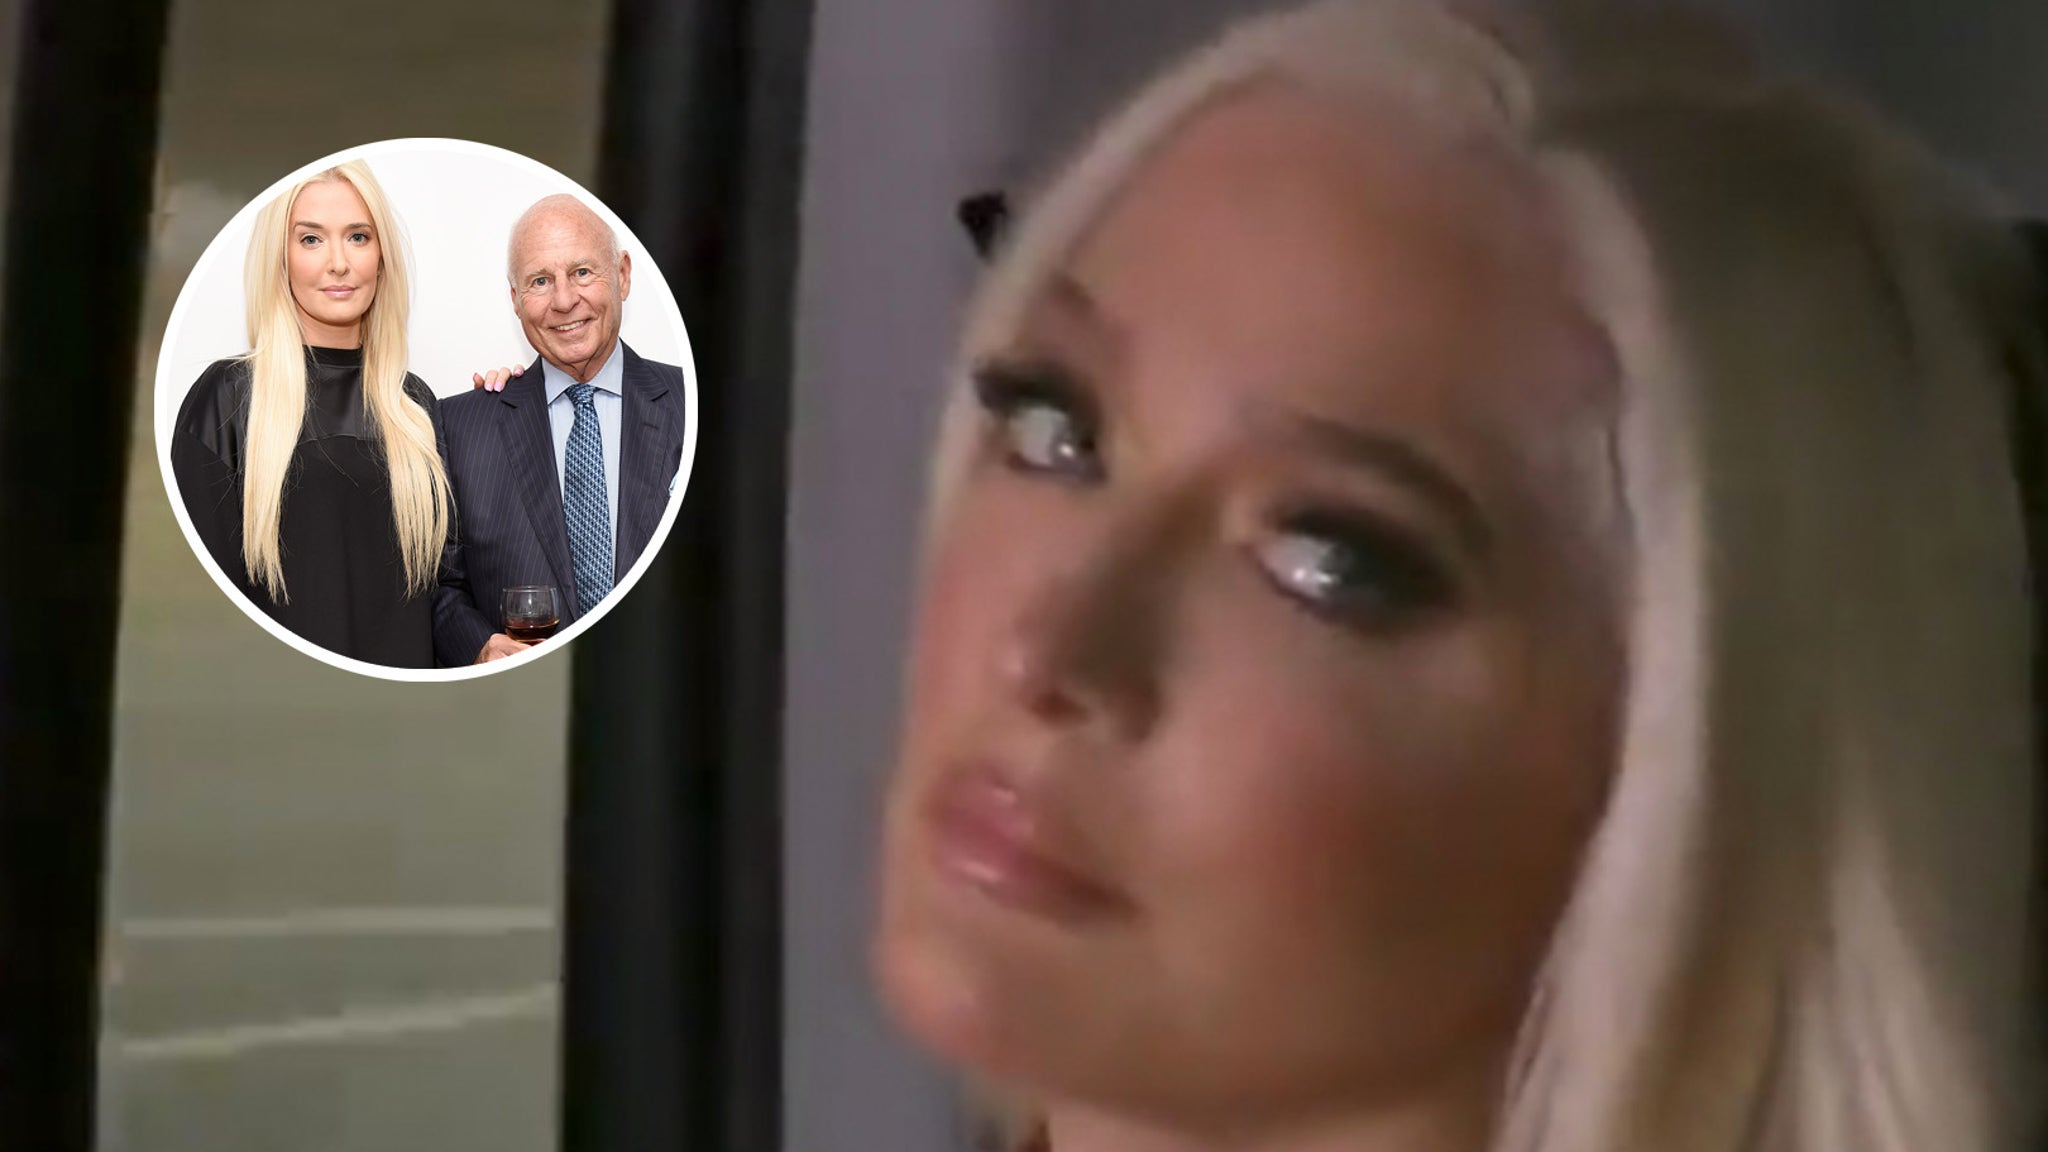 Erika Jayne says divorce is 'so fucking complicated' in early RHOBH comments